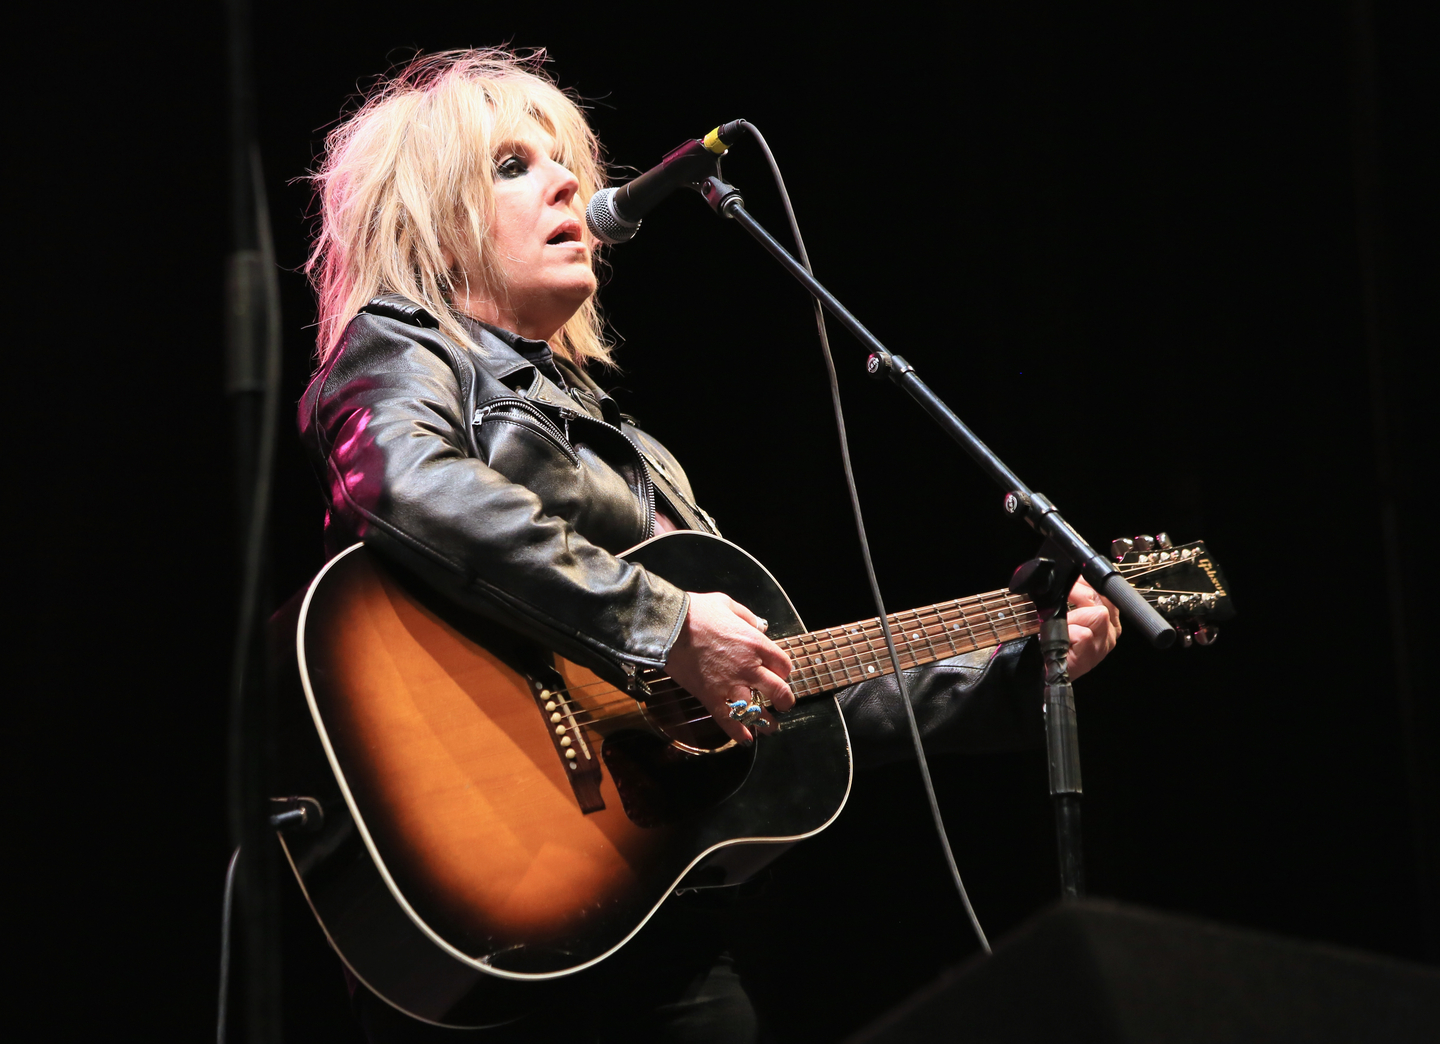 Lucinda Williams, 2014. Photo by Heather Kennedy/Getty Images for SXSW